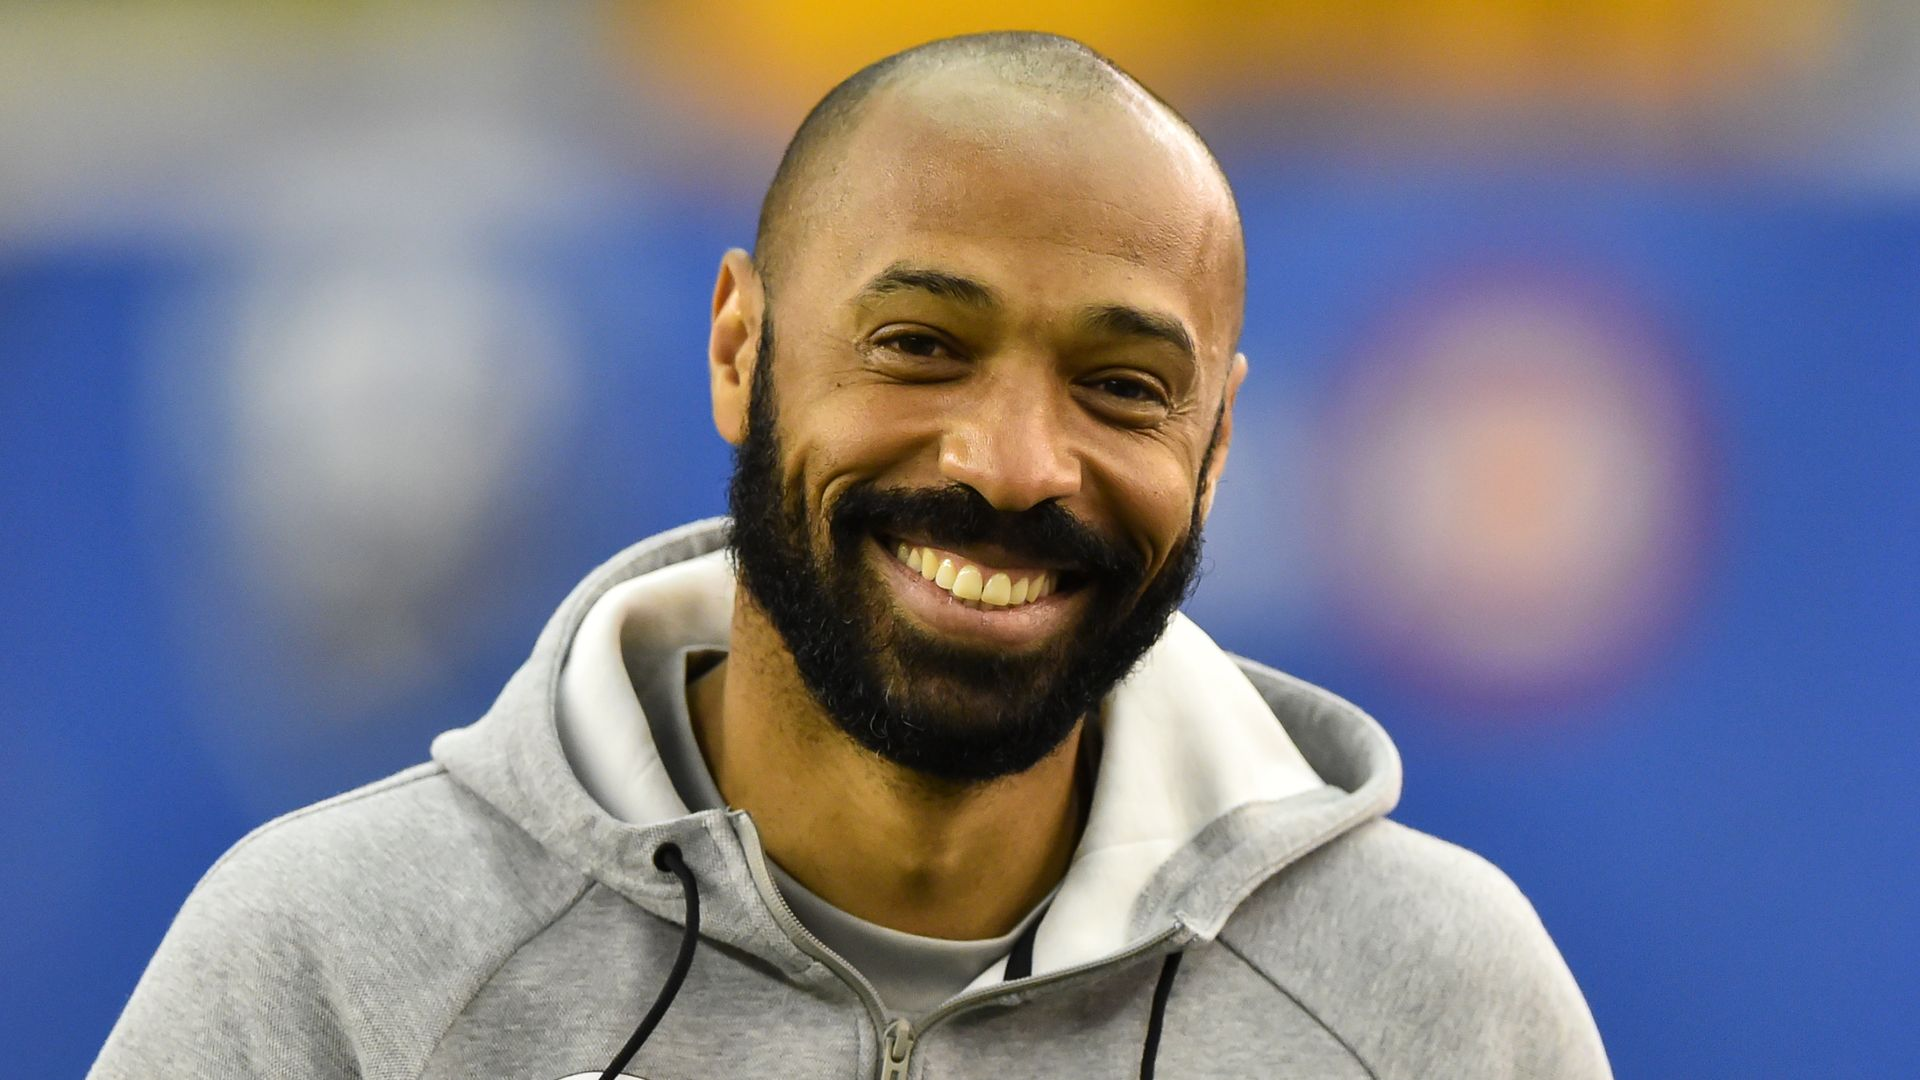 MLS: First home win for Henry as Montreal boss